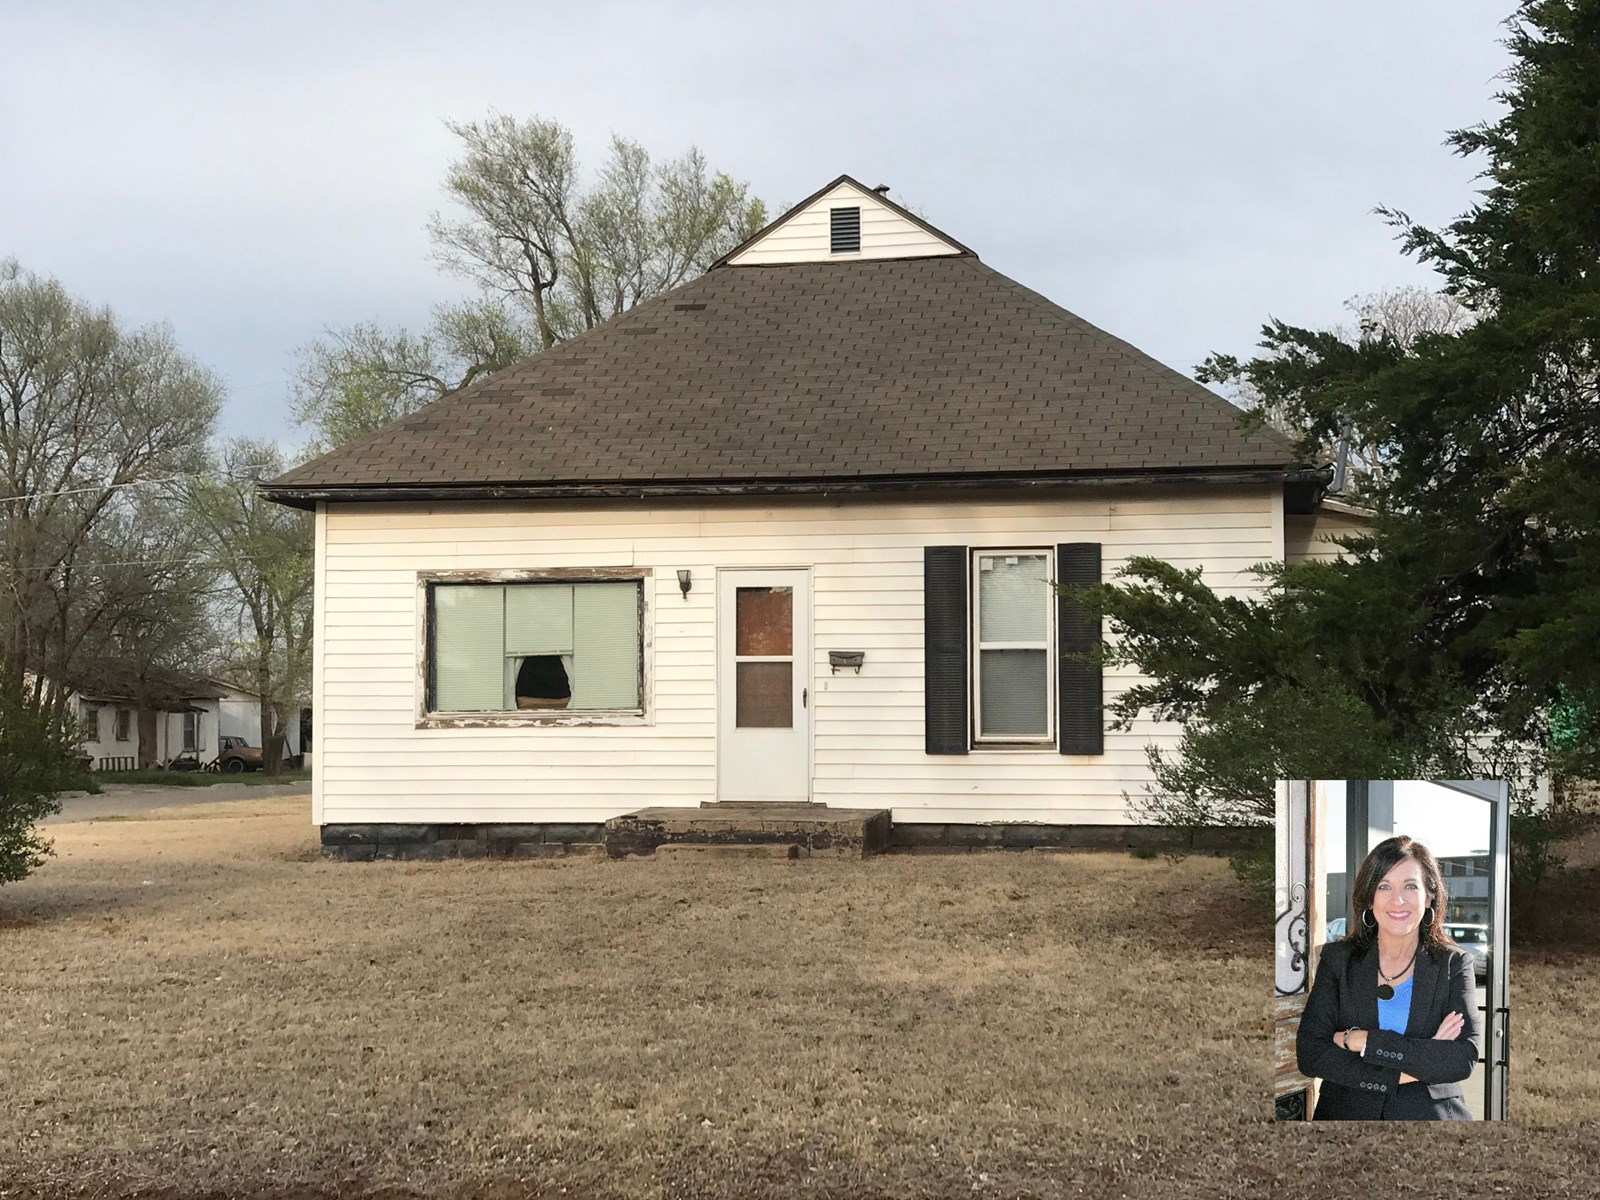 3 Bedroom Home For Sale in Alva, OK (Woods County)